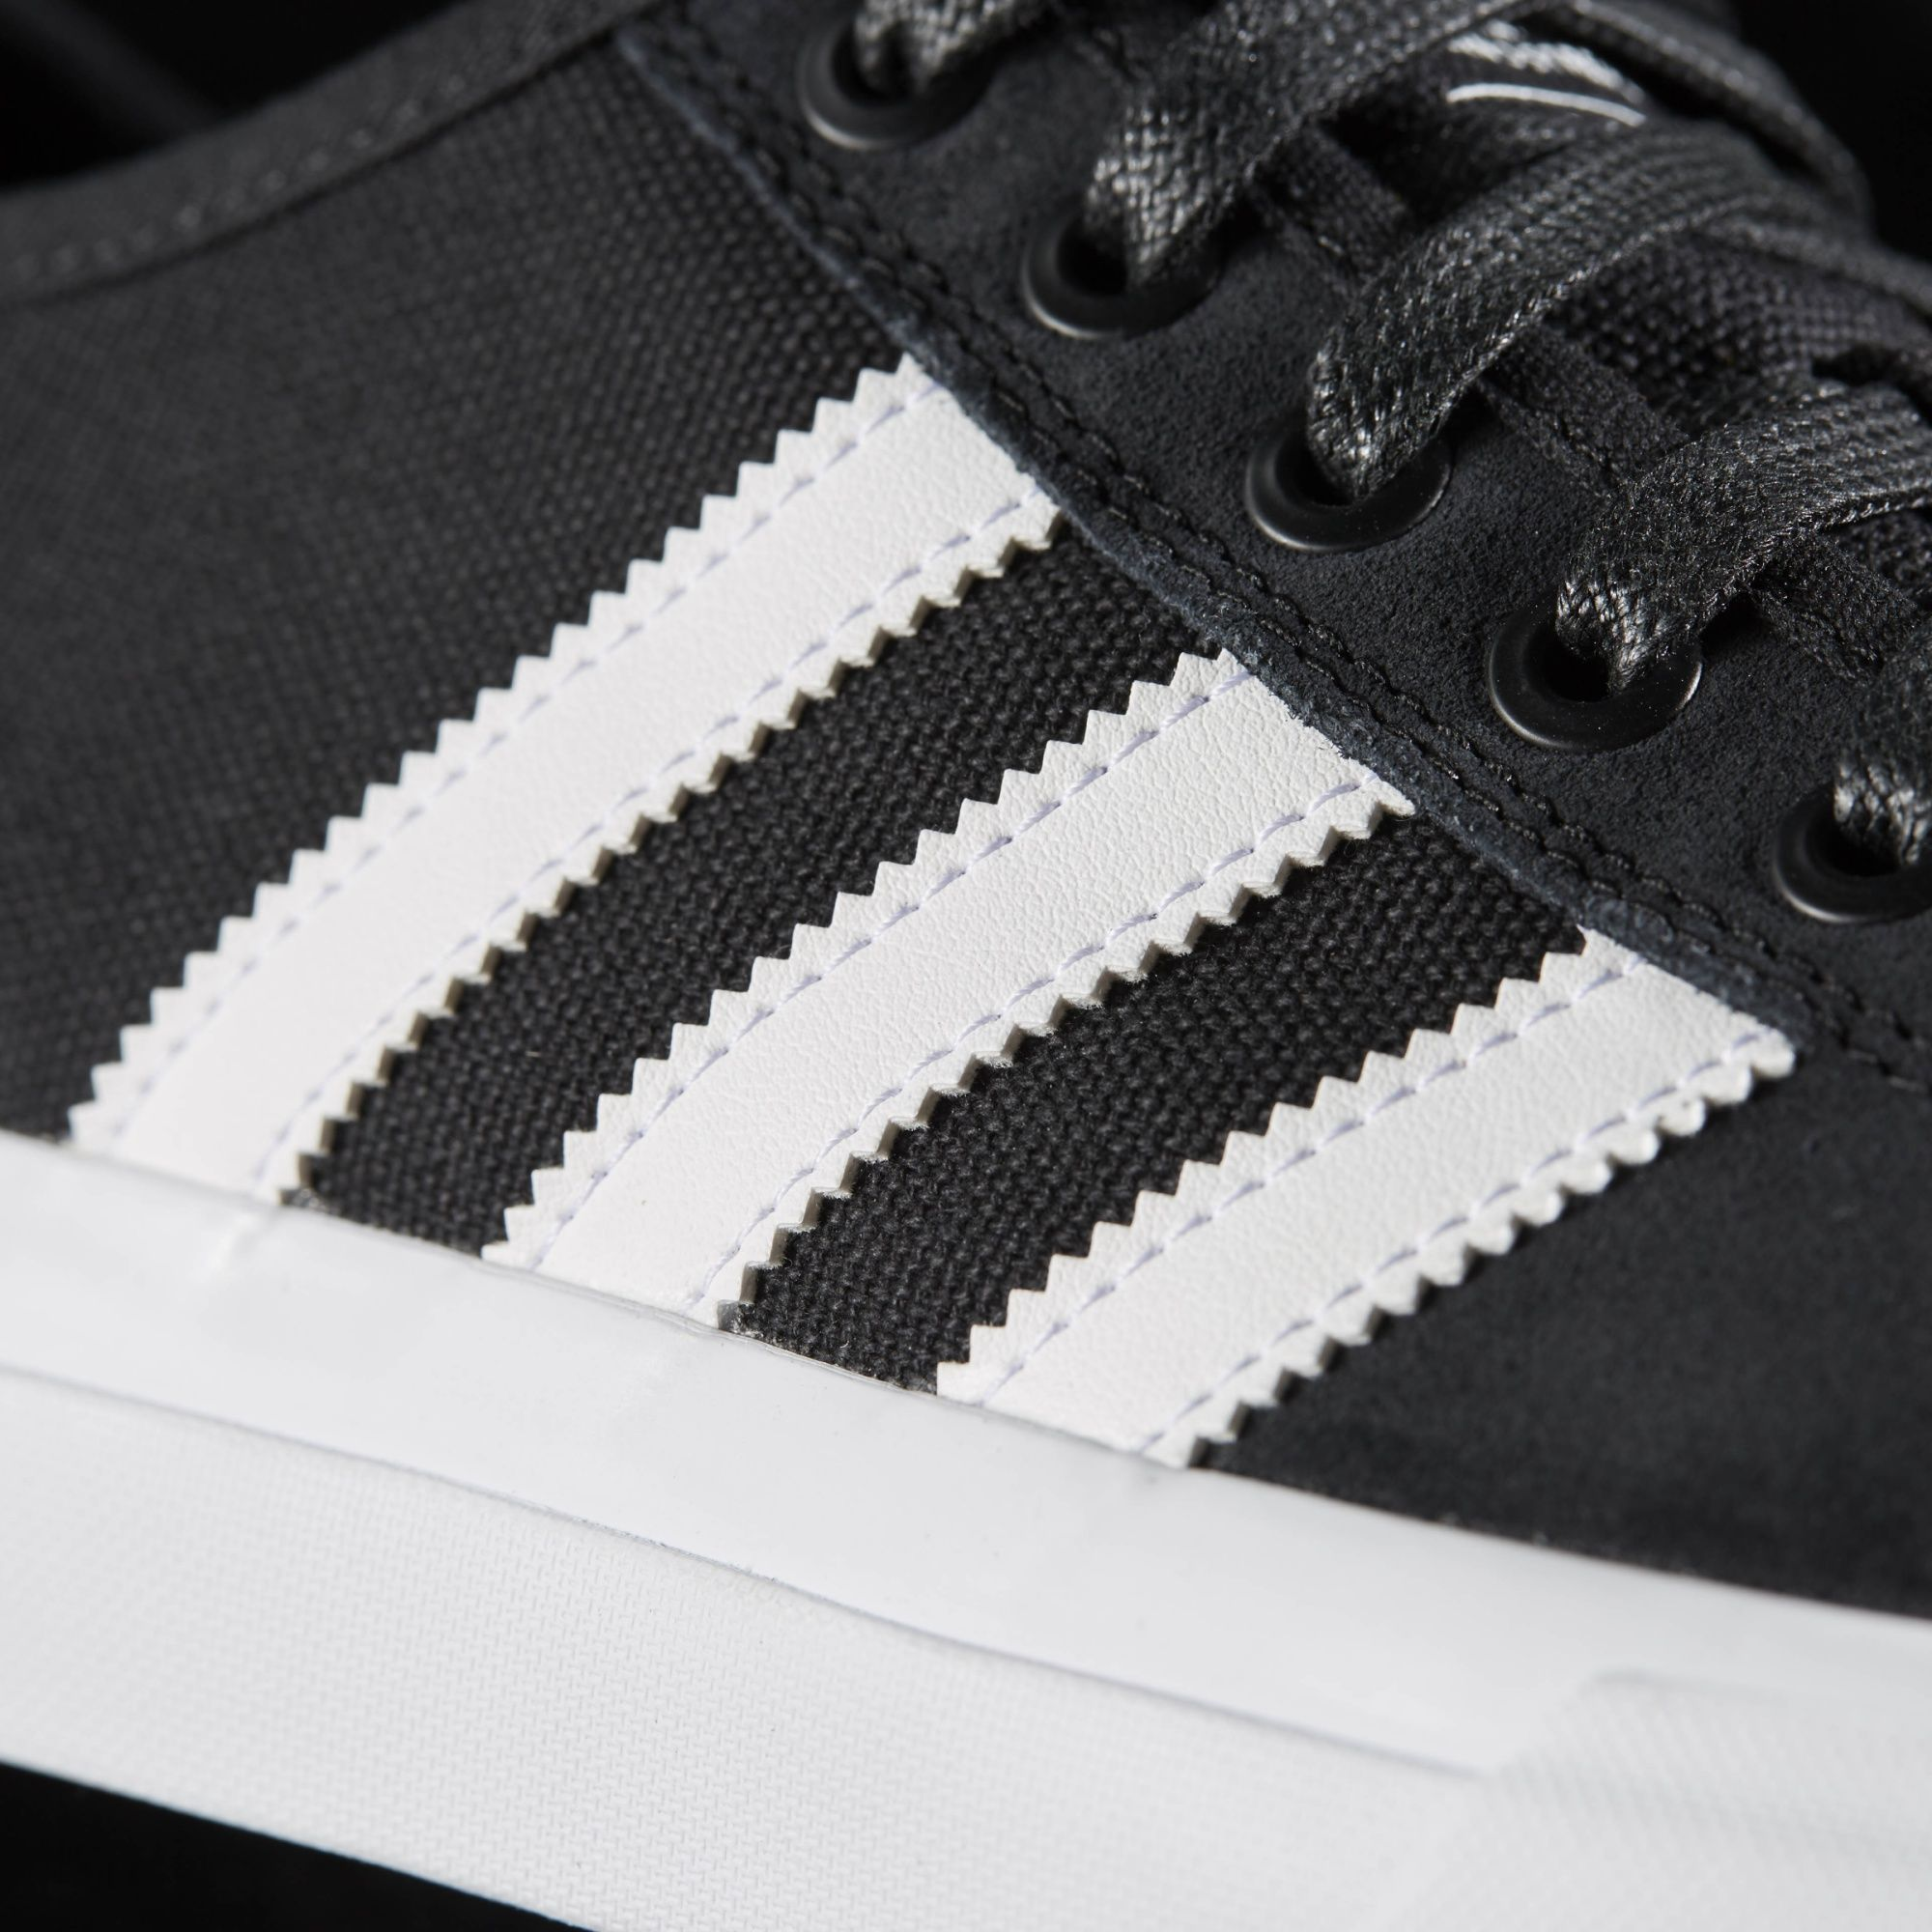 Adidas Originals Shoes Matchcourt RX Black White FTW Black Remix Skateboard Sneakers